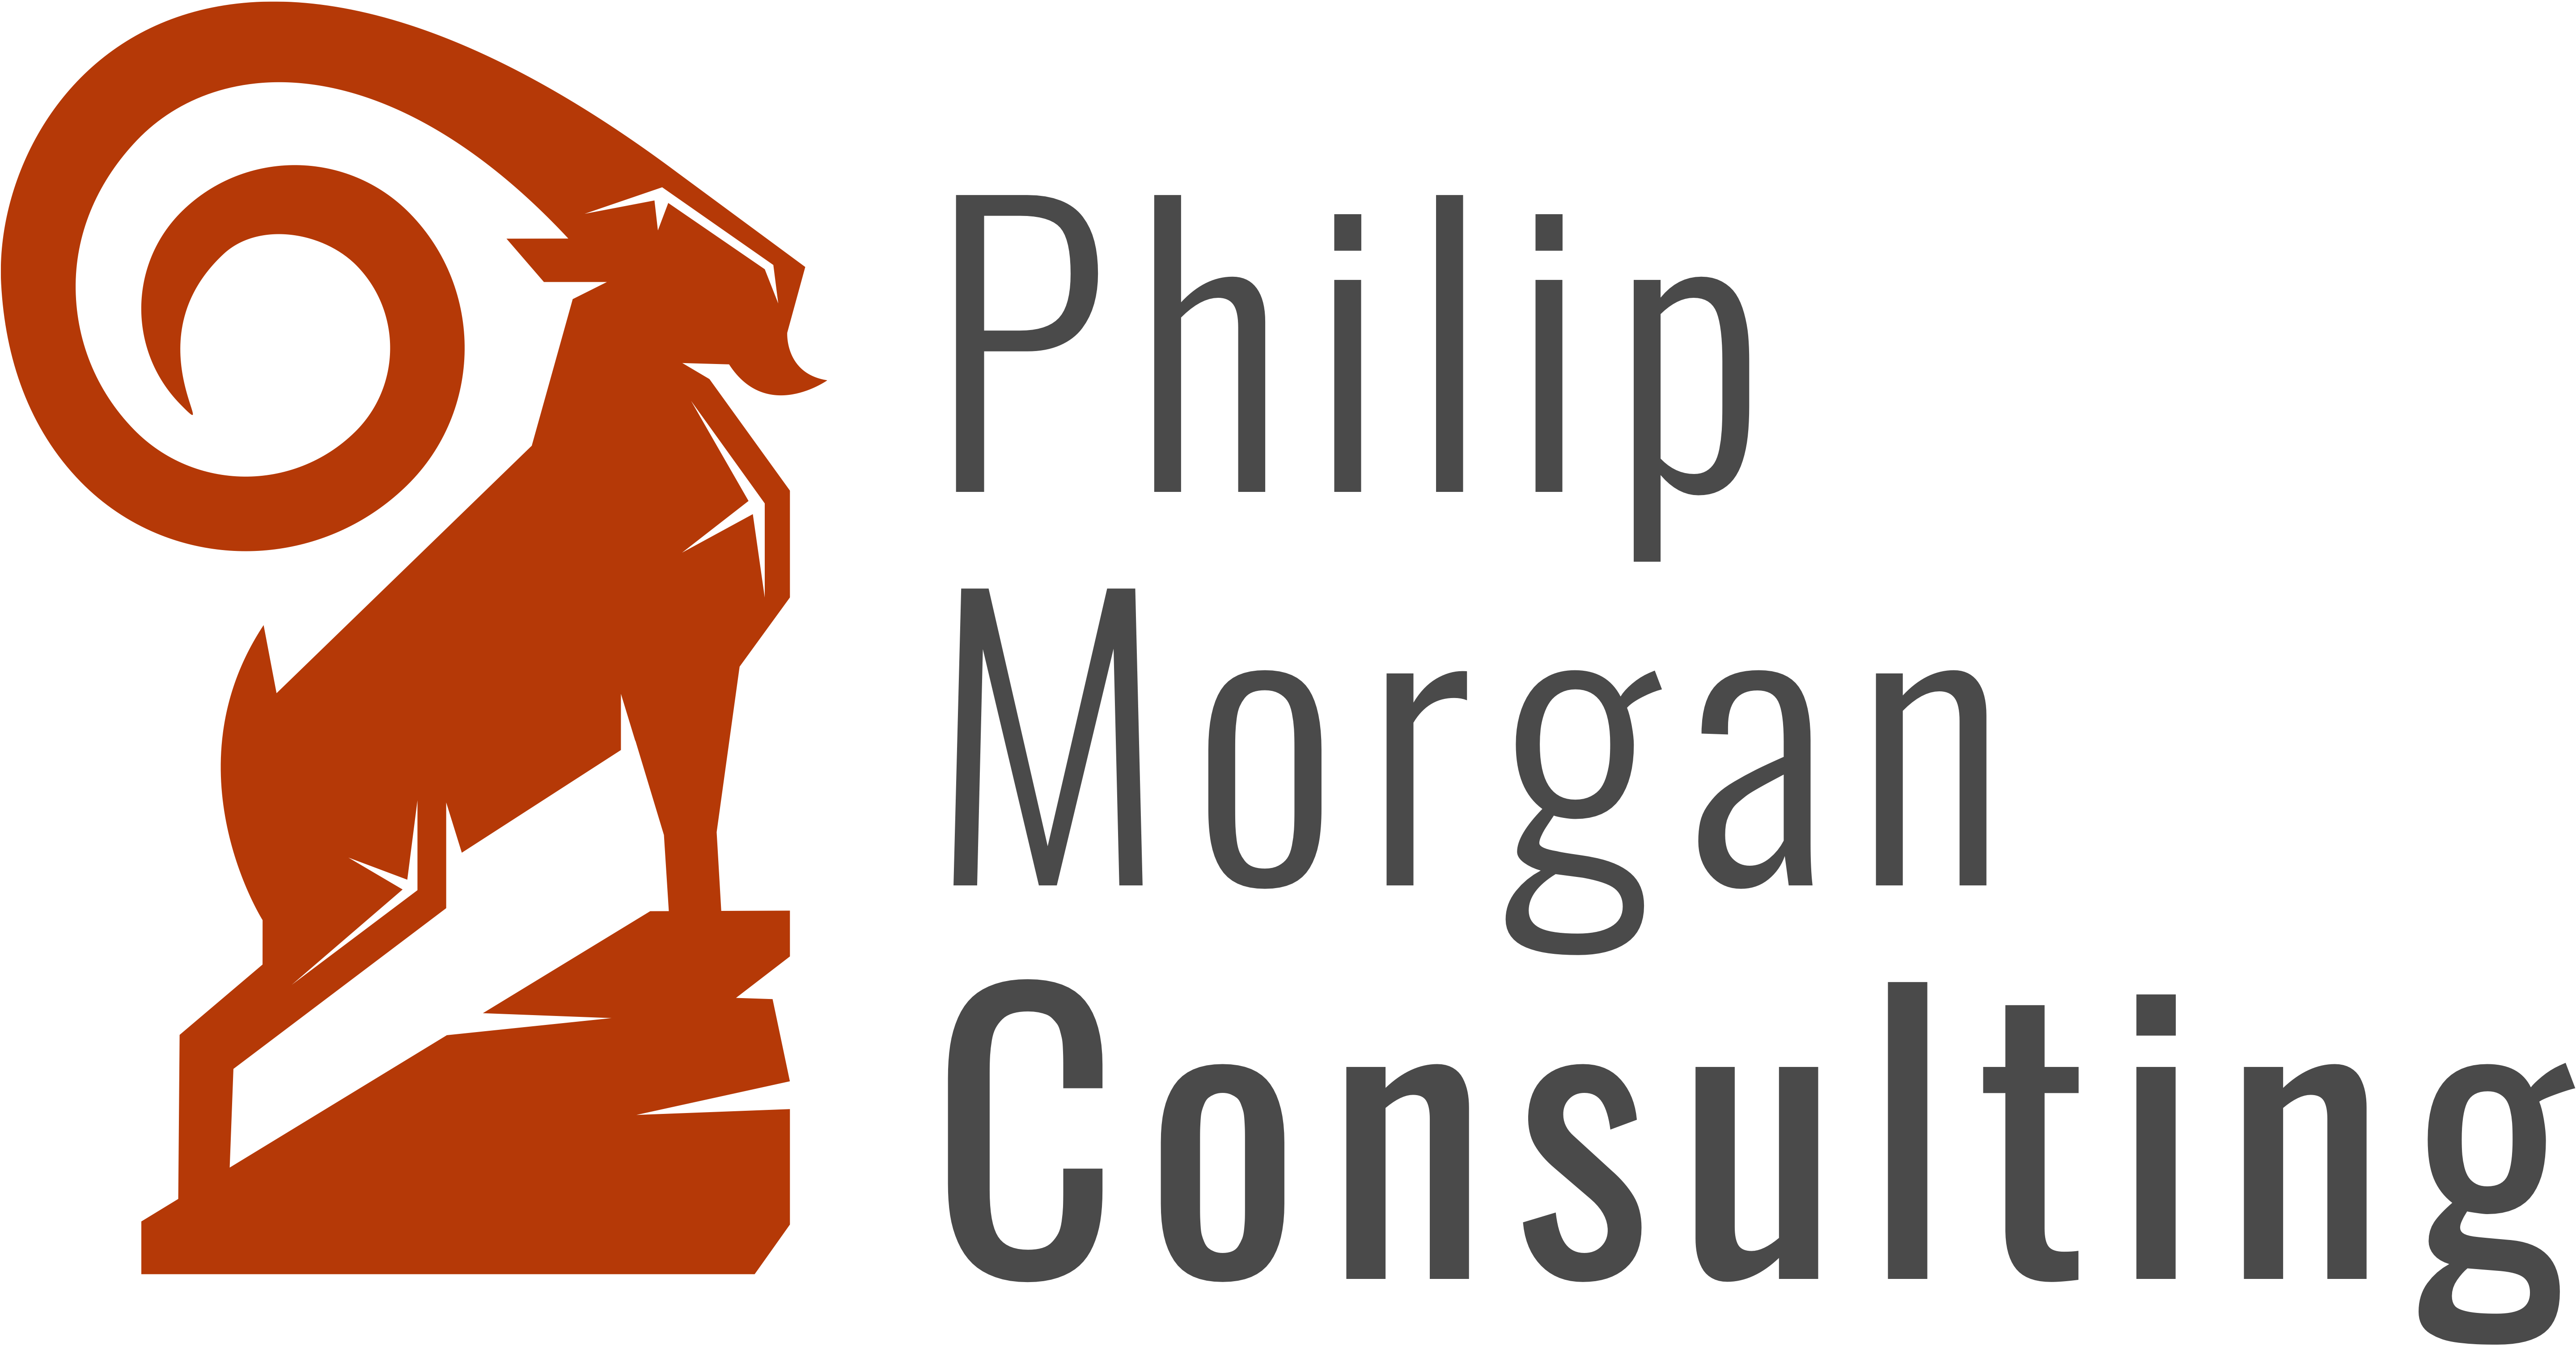 Pmc logo for sign